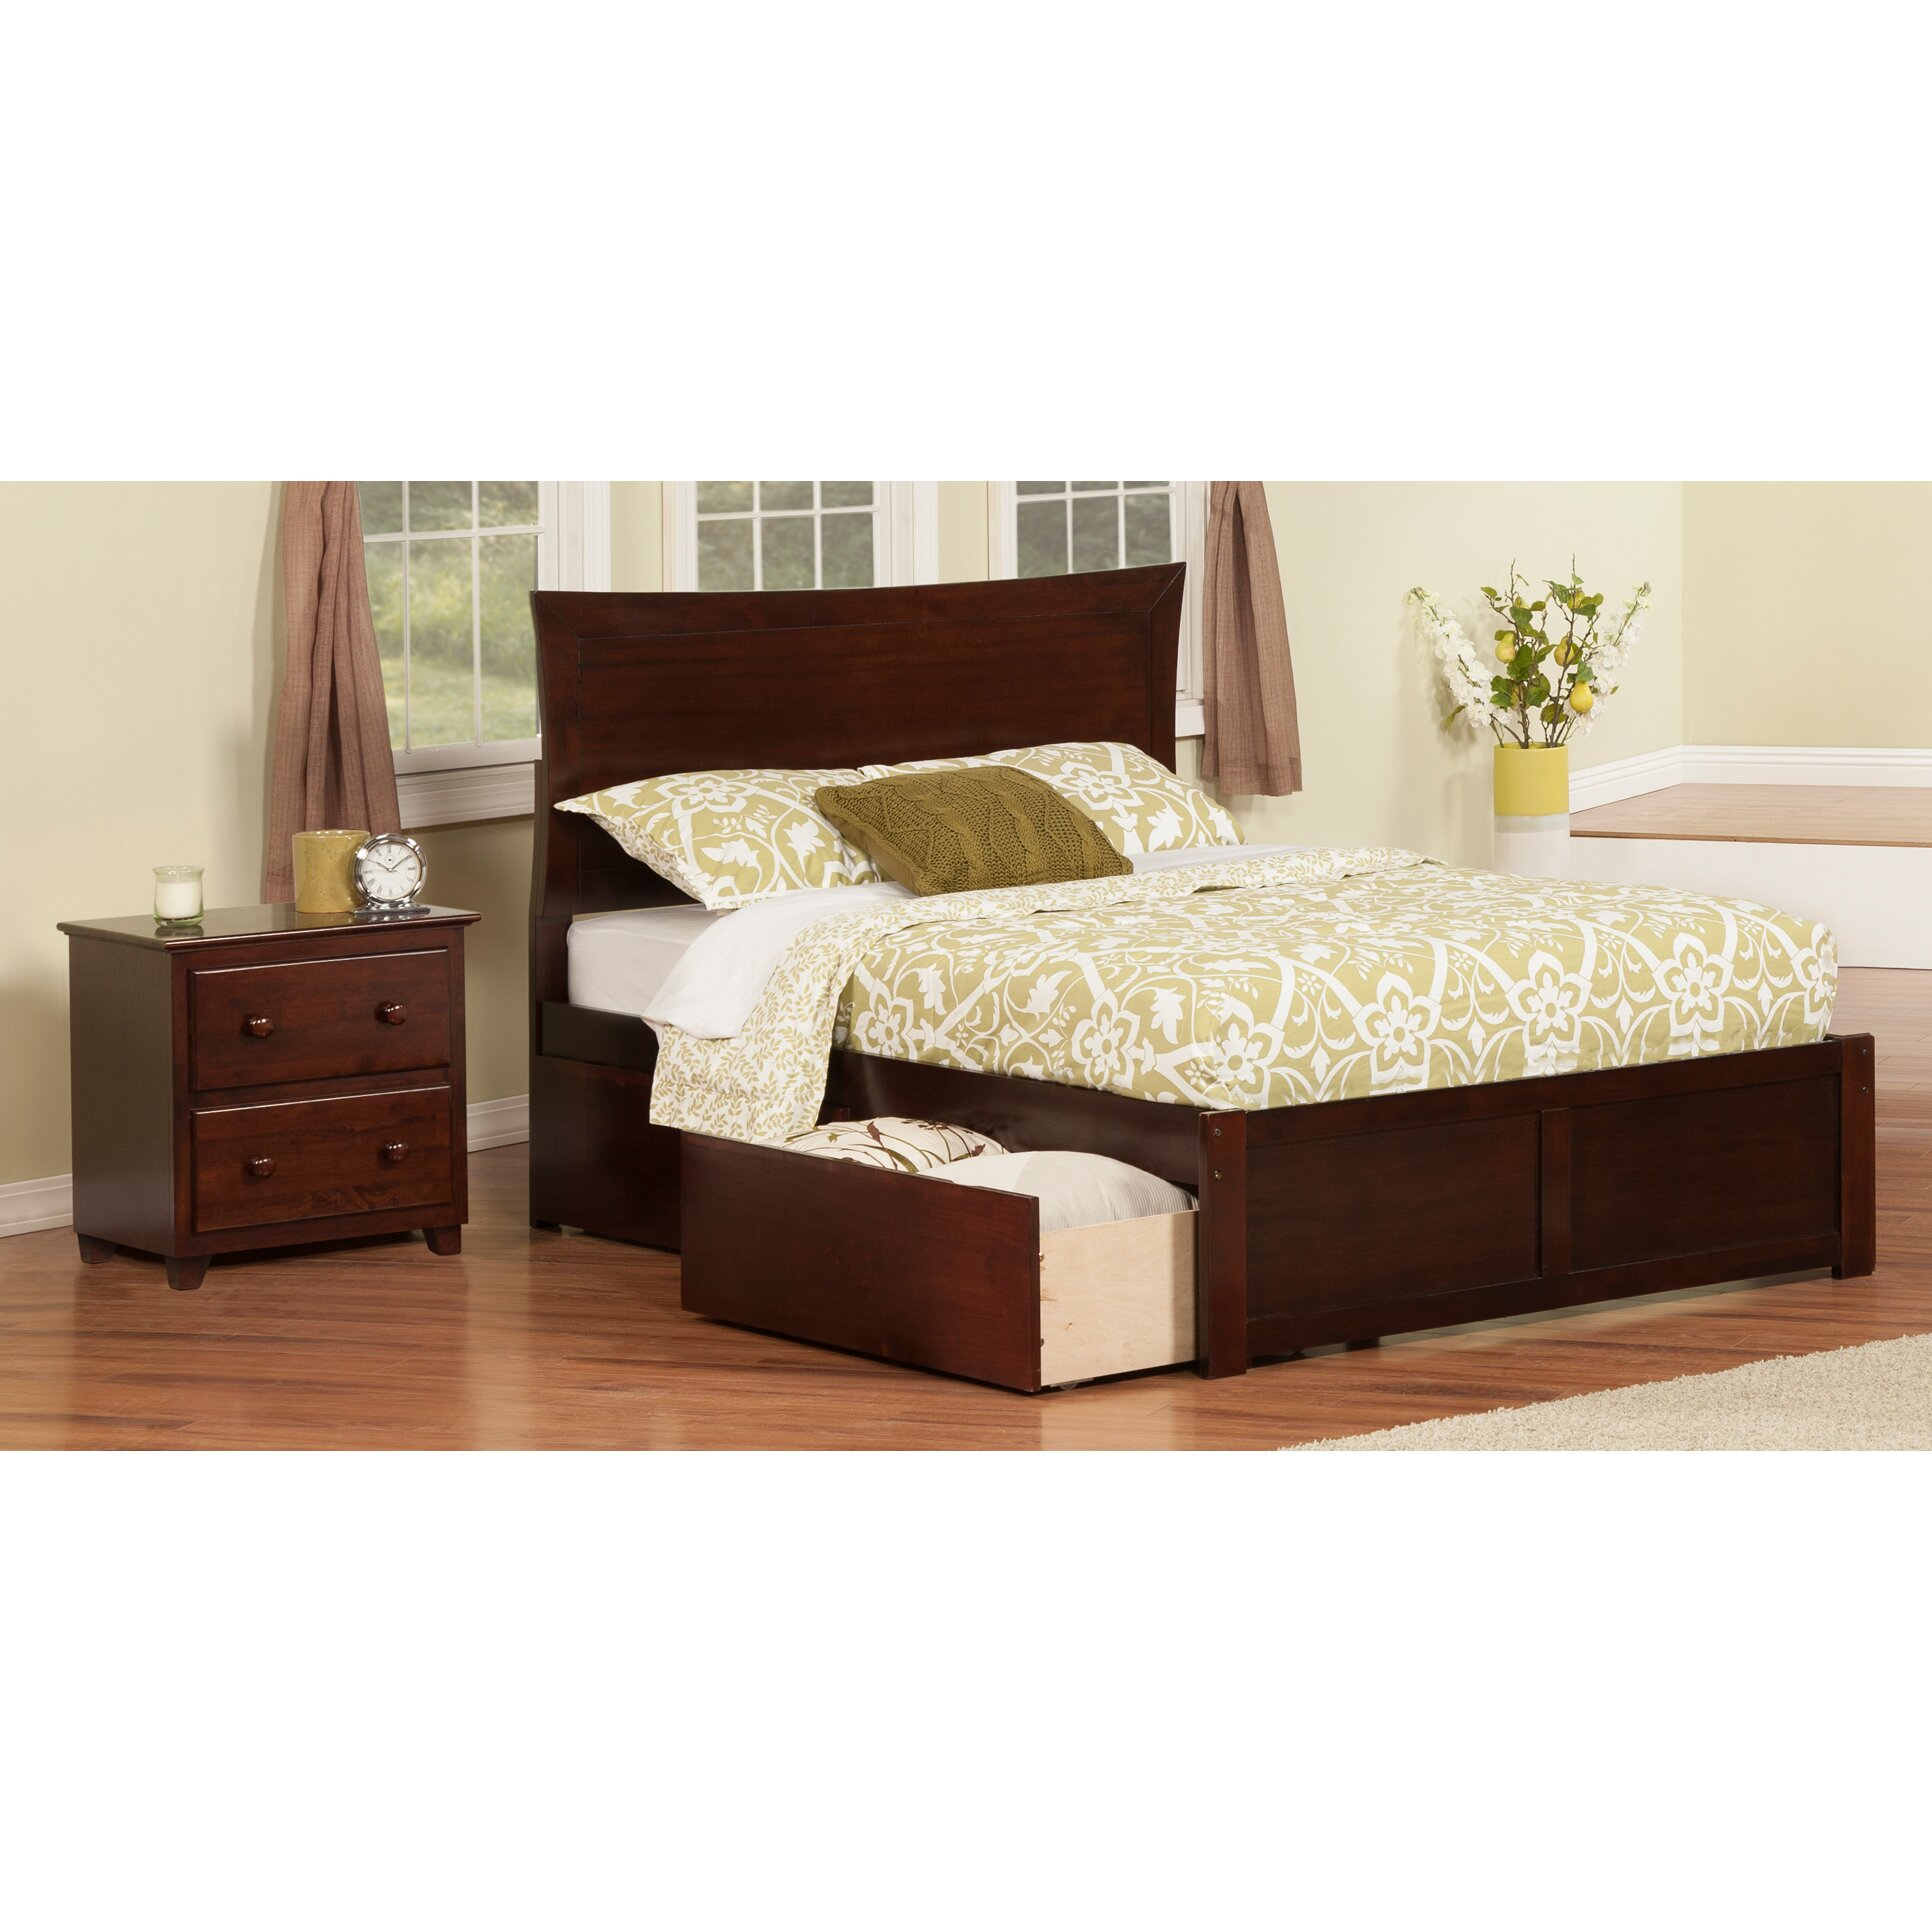 Viv Rae Egon Panel 2 Piece Bedroom Set Reviews Wayfair